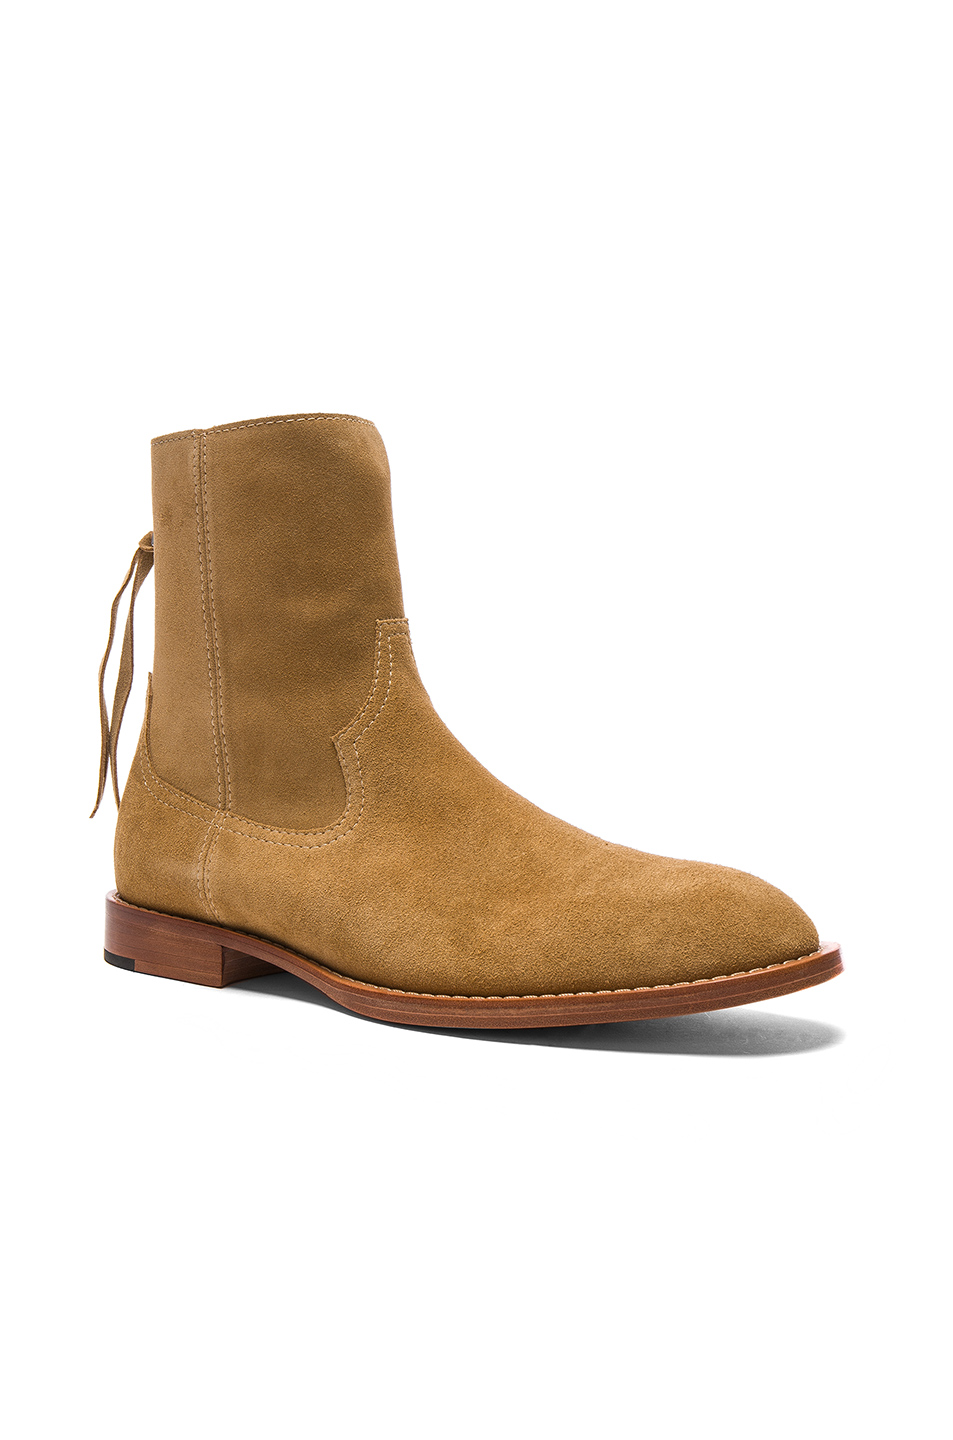 Amiri Suede Shane Boots in Brown,Neutrals